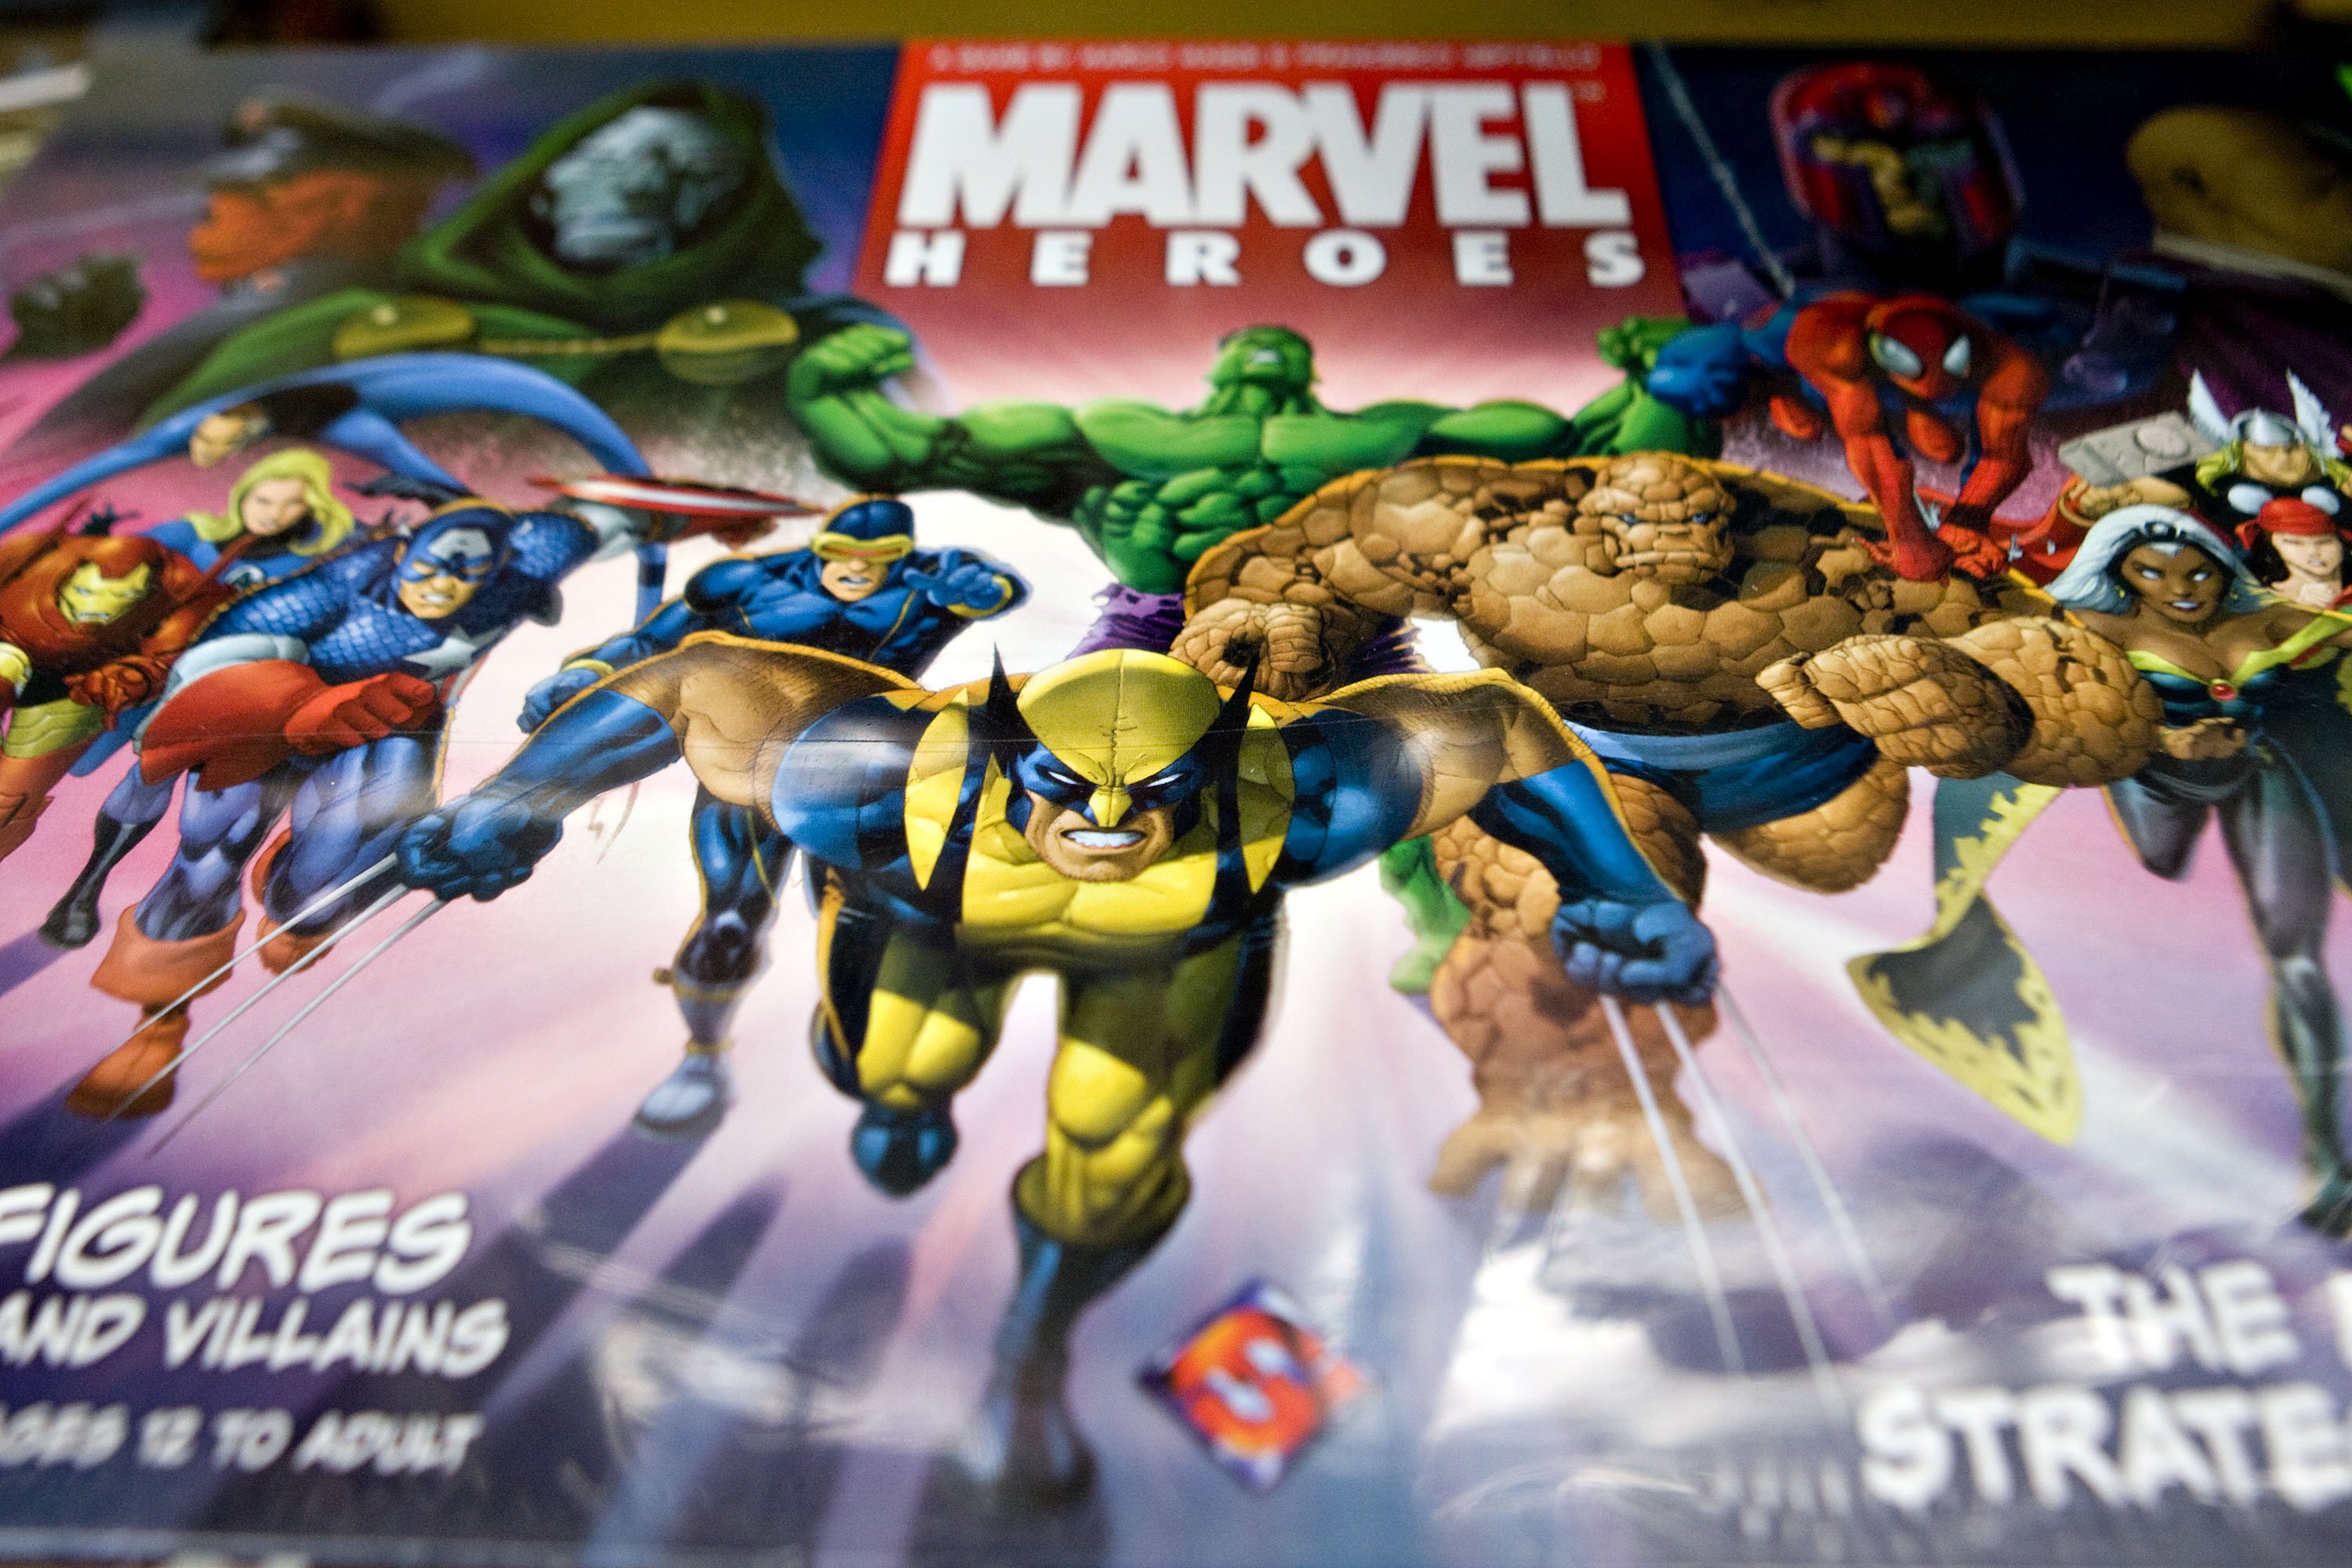 Marvel comic book characters including Wolverine, Captain America, and the Incredible Hulk appear on a Marvel Heroes board game displayed for a photograph at Midtown Comics in New York, U.S., on Aug. 31, 2009.